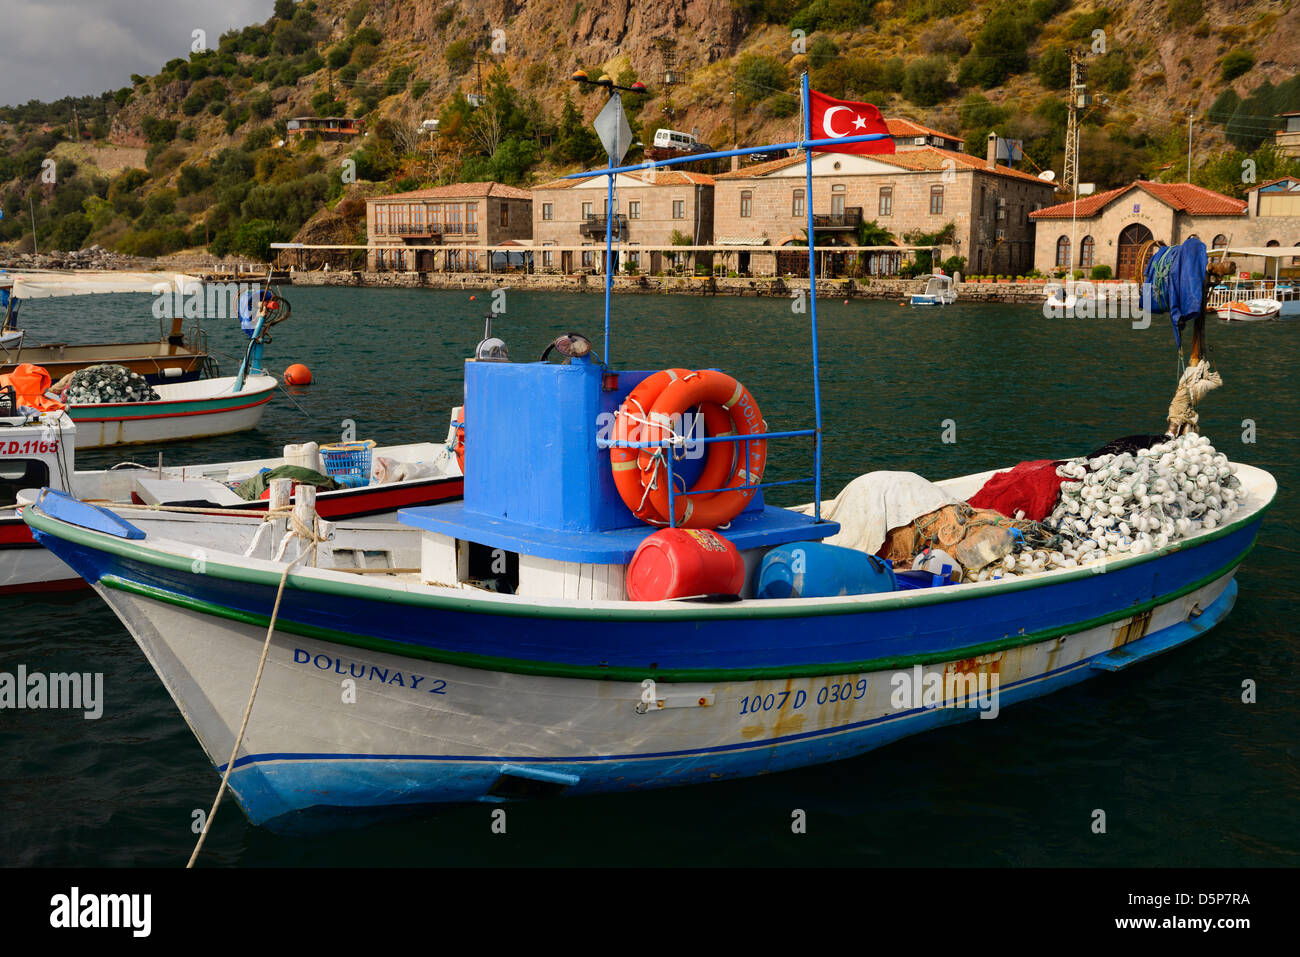 Fishing boats and hotels in the picturesque hamlet of Assos Iskele Turkey on the Aegean Sea - Stock Image